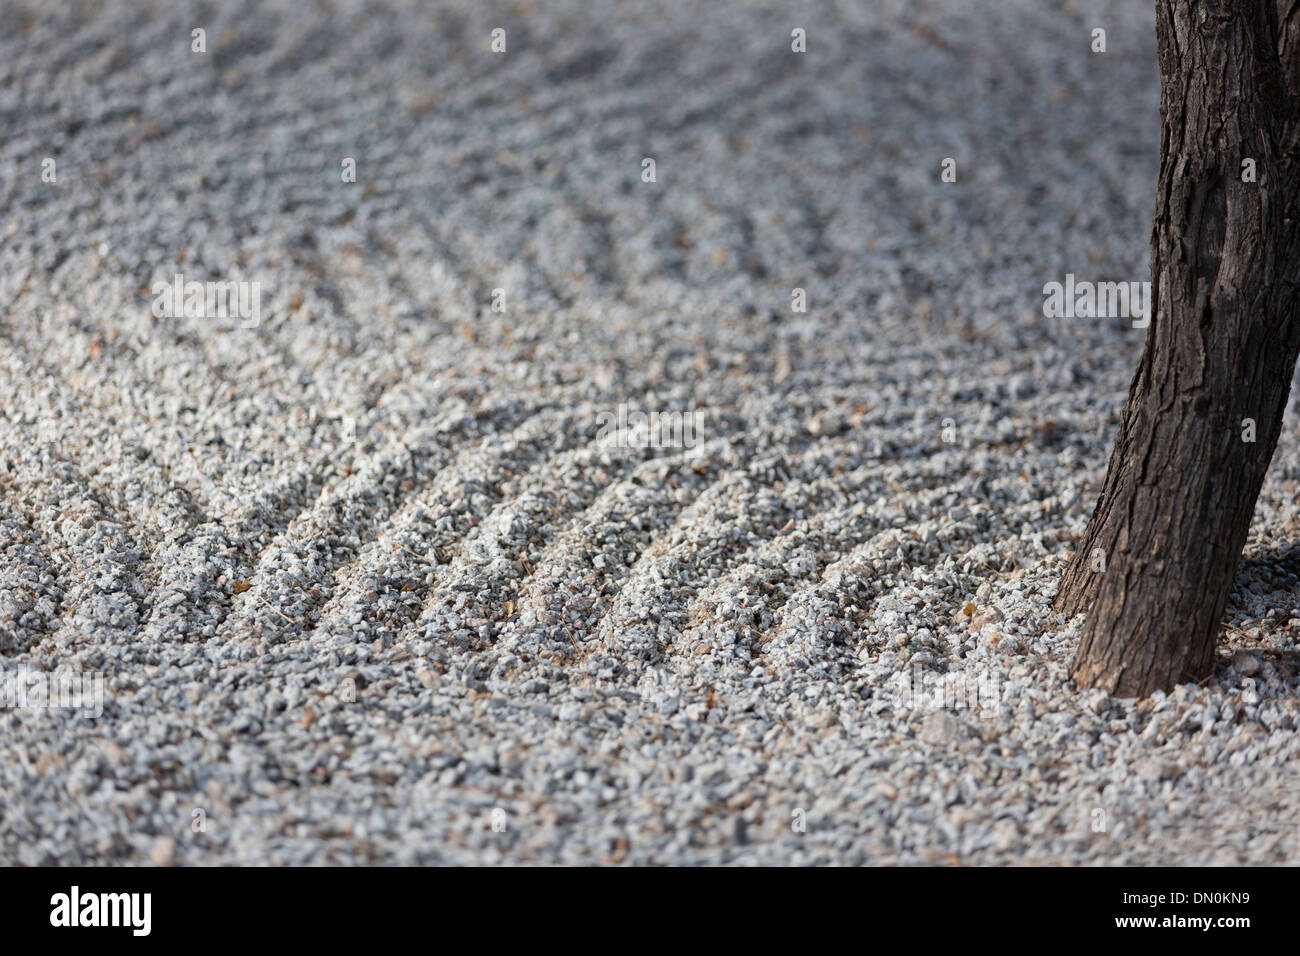 Peaceful Zen garden with raked sand and single tree trunk.  Calm image, strong background, and copy space. - Stock Image